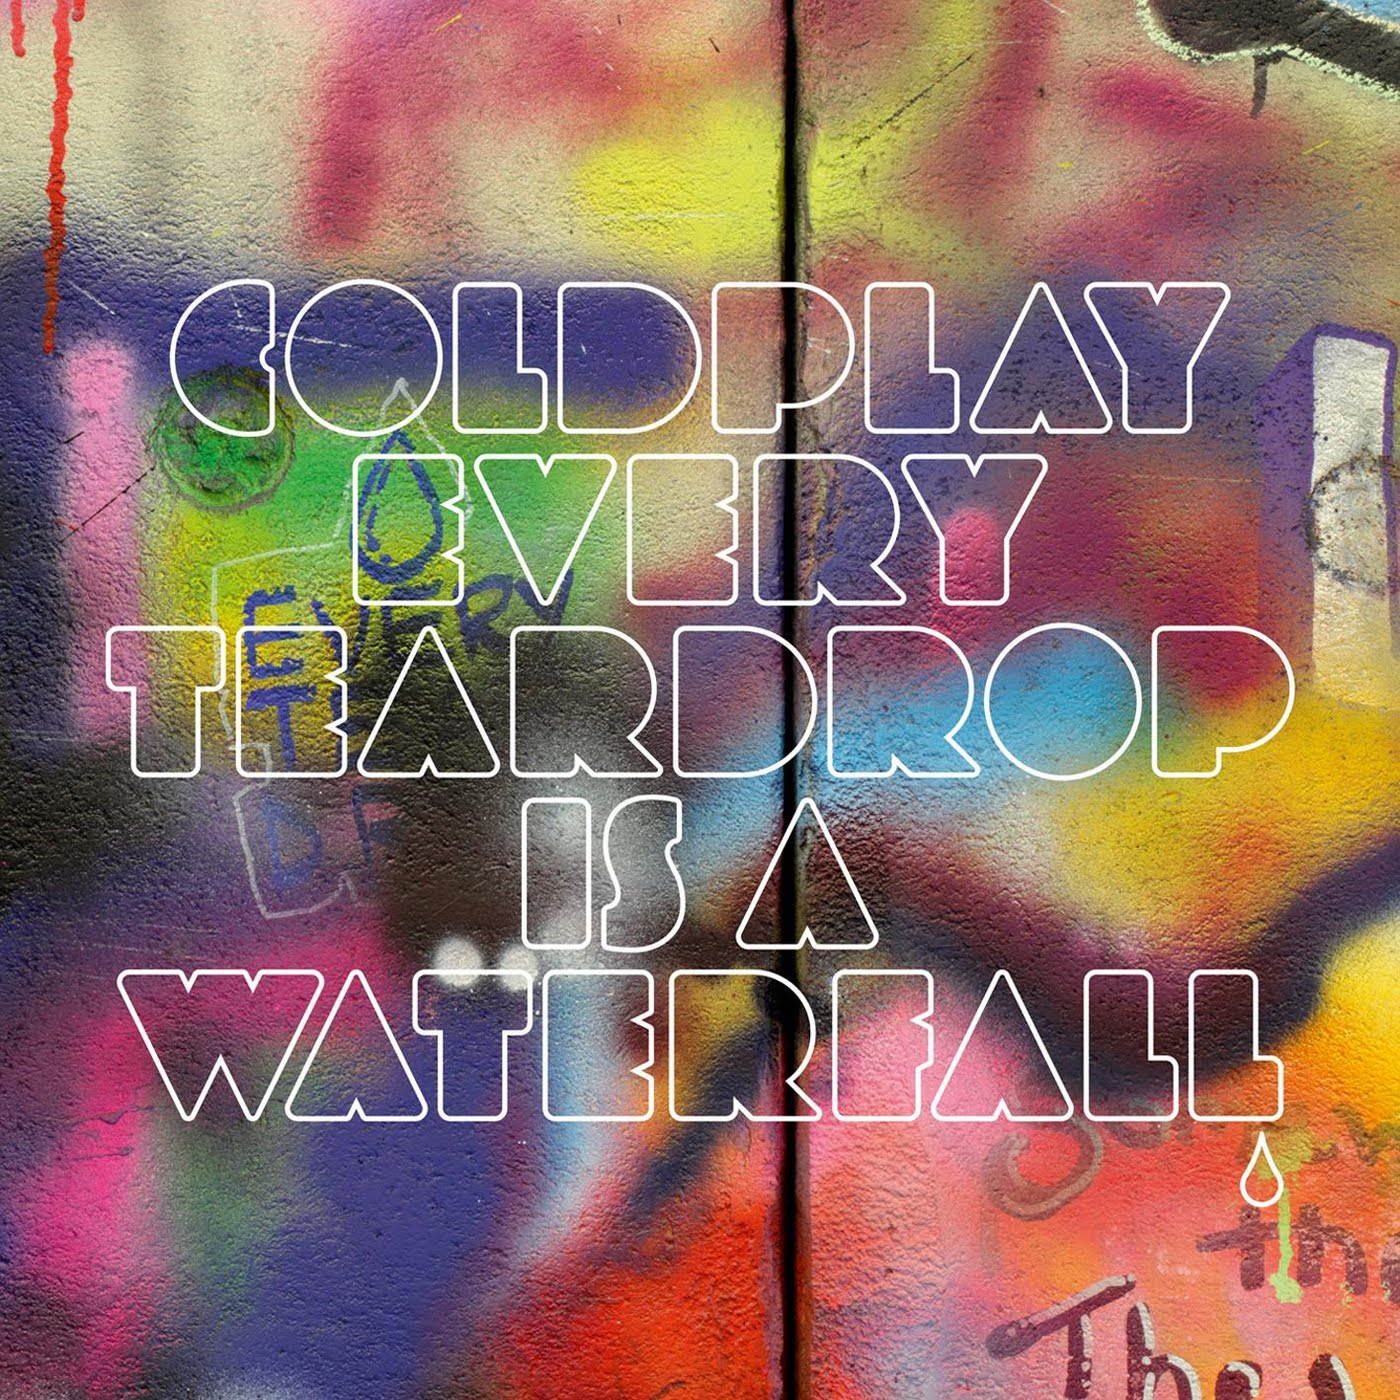 Coldplay // Every Teardrop Is A Waterfall // Font ?